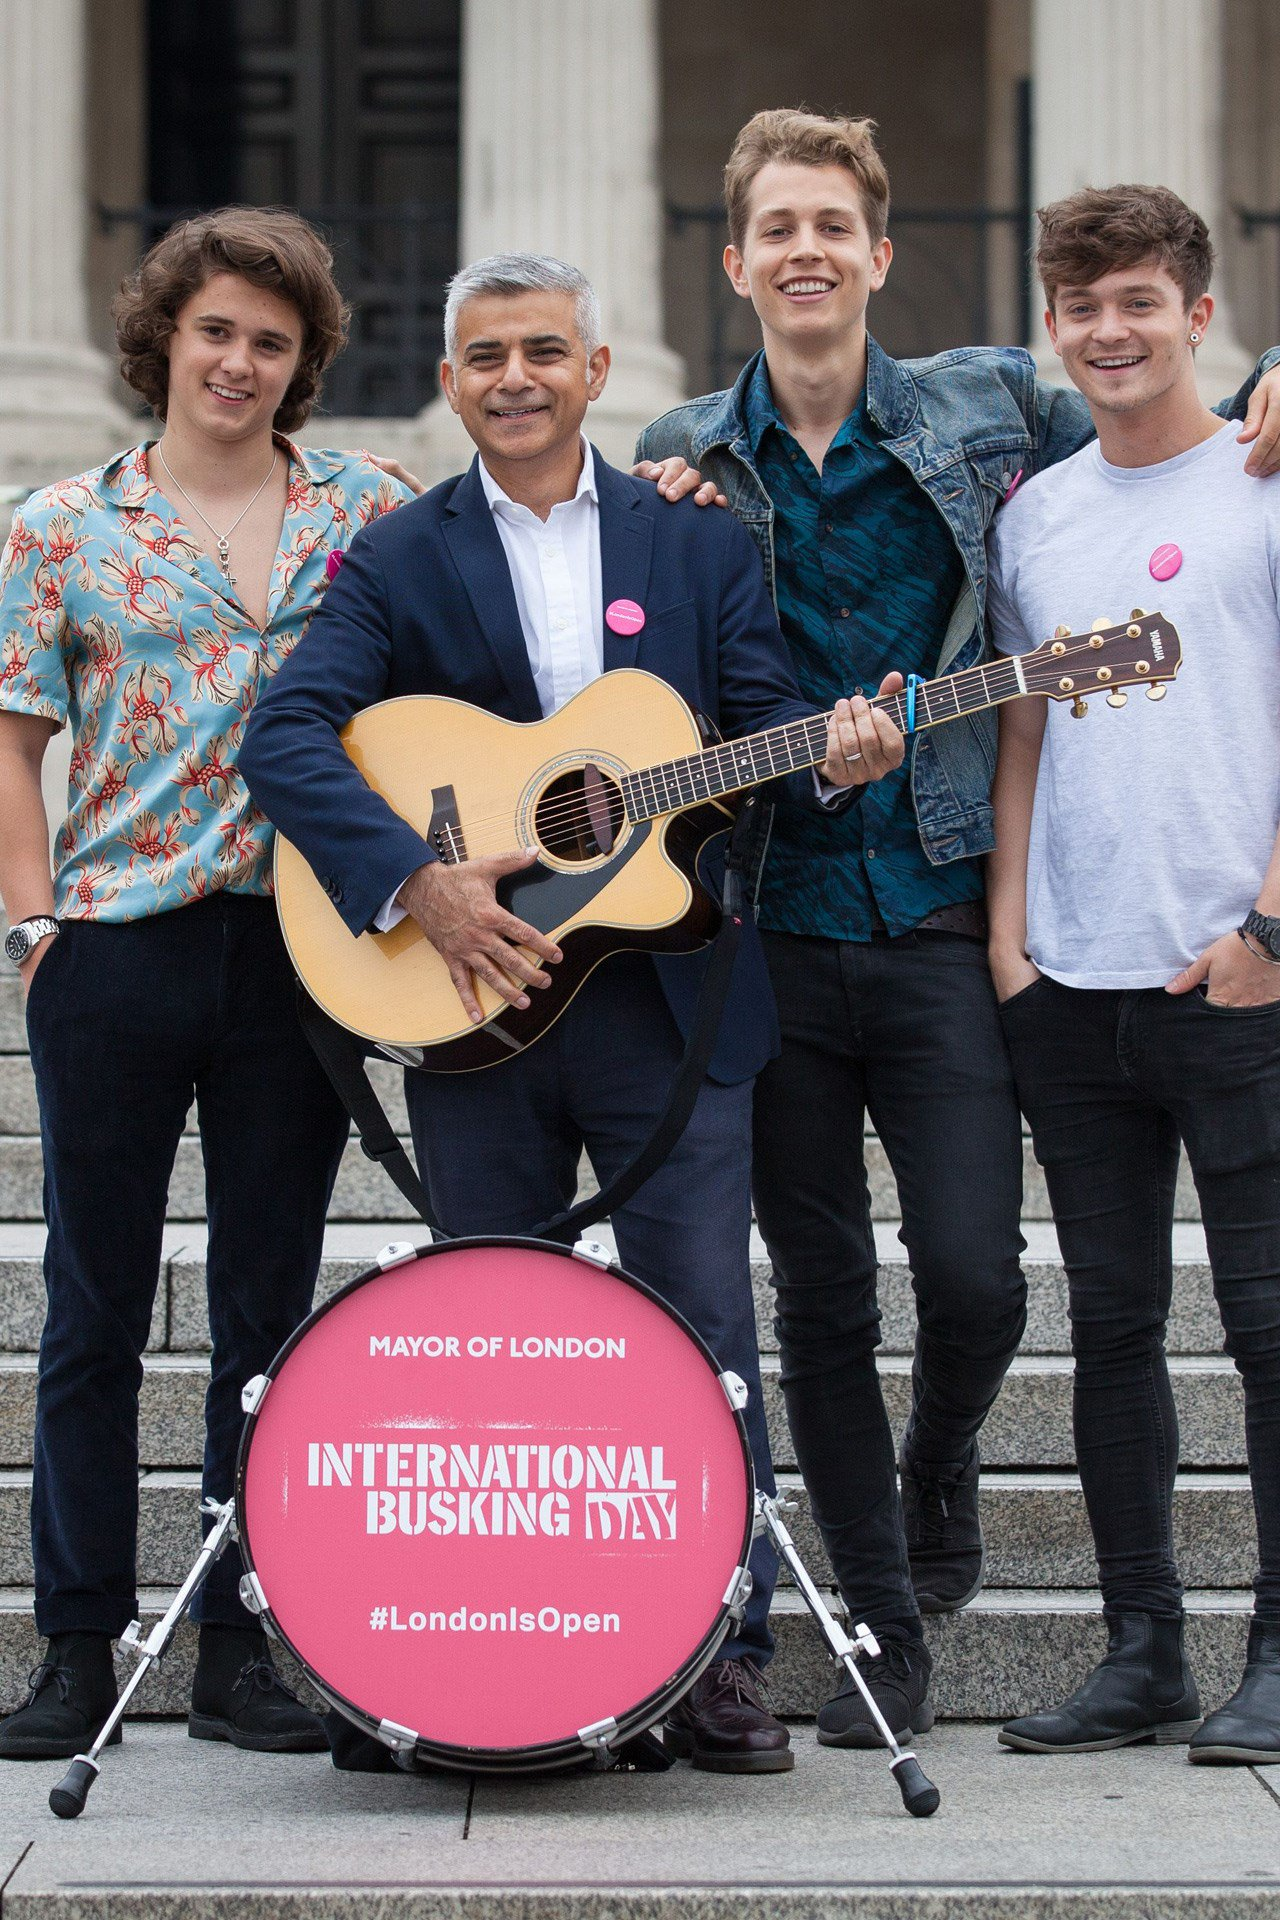 When @SadiqKhan and @TheVampsband took to the stage:  https://t.co/xwYGPL7K1m https://t.co/0tFfo1QSGc